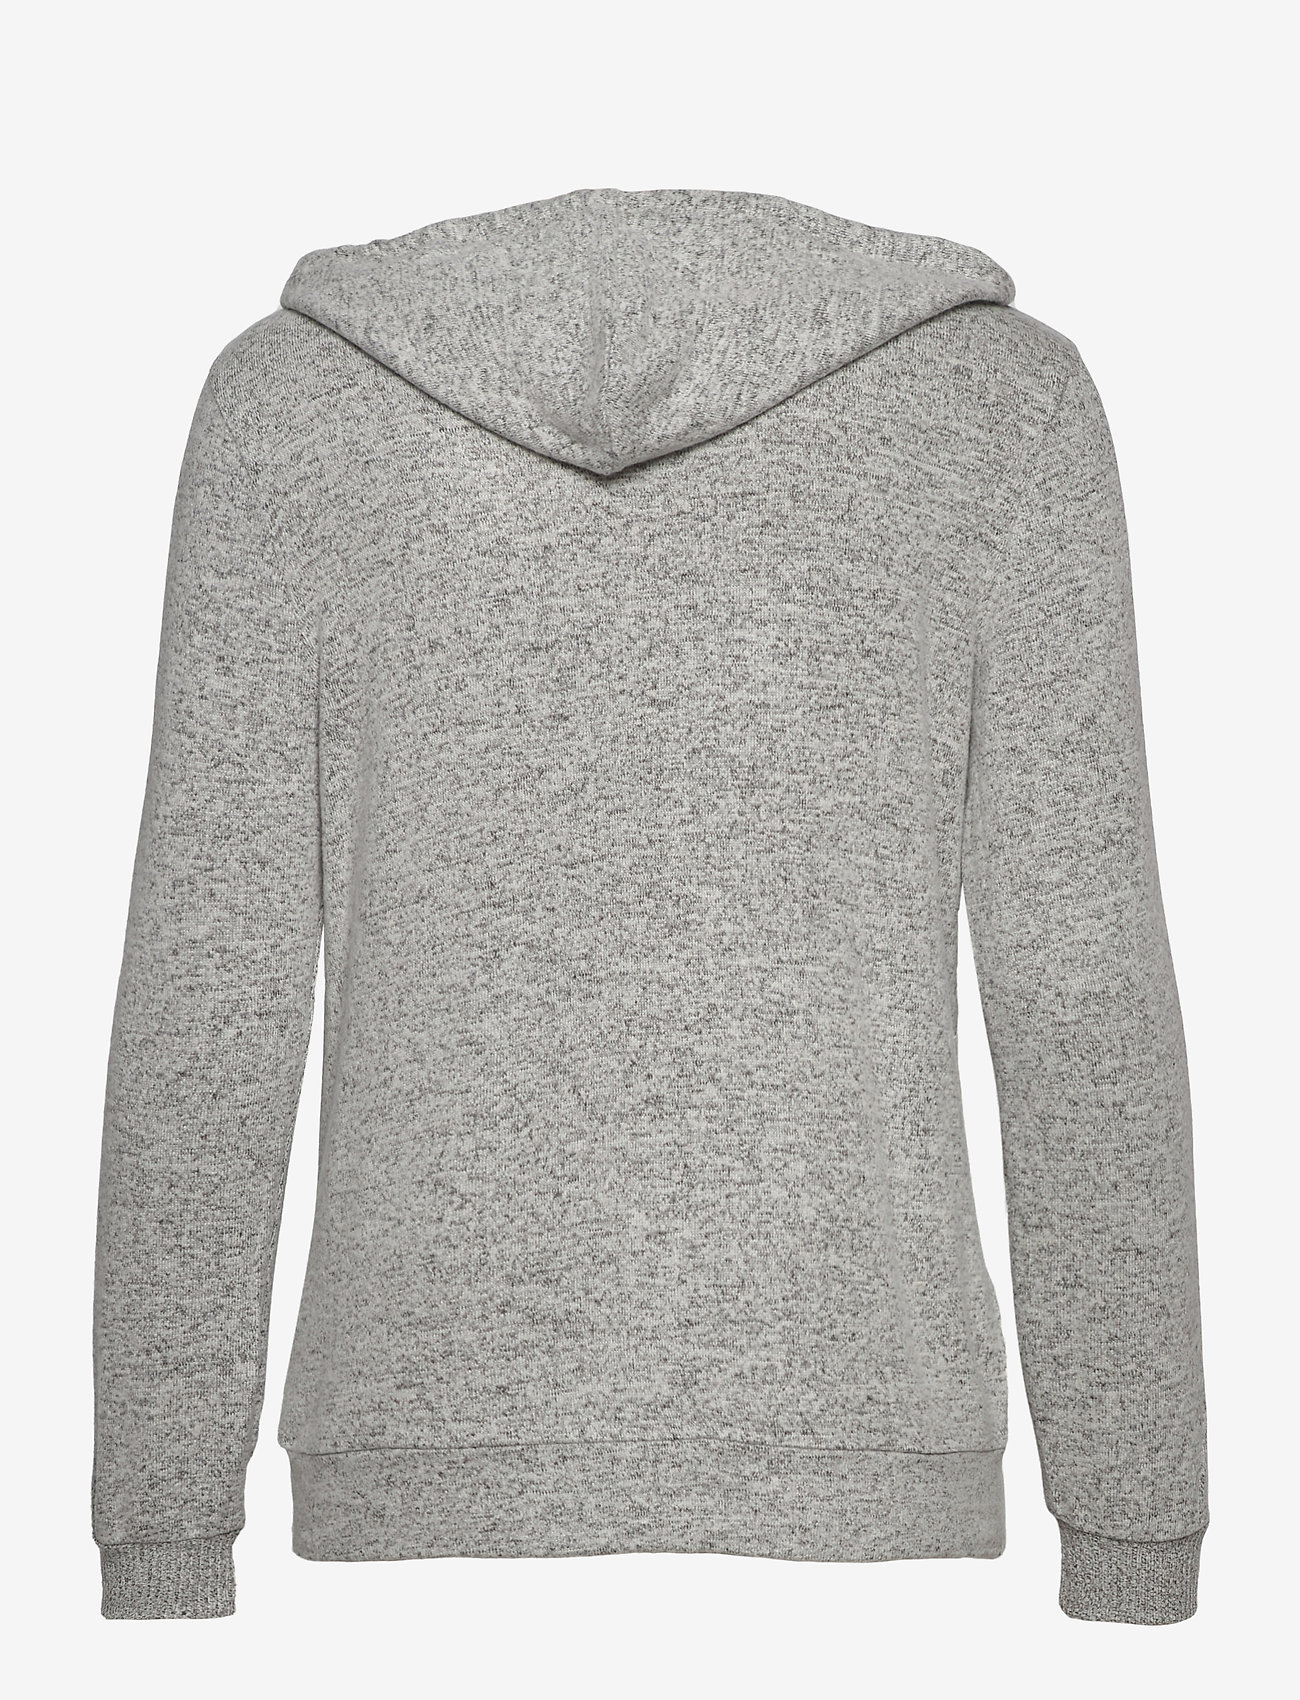 Missya - Cozy hoodie - hauts - light grey melange w tape - 1